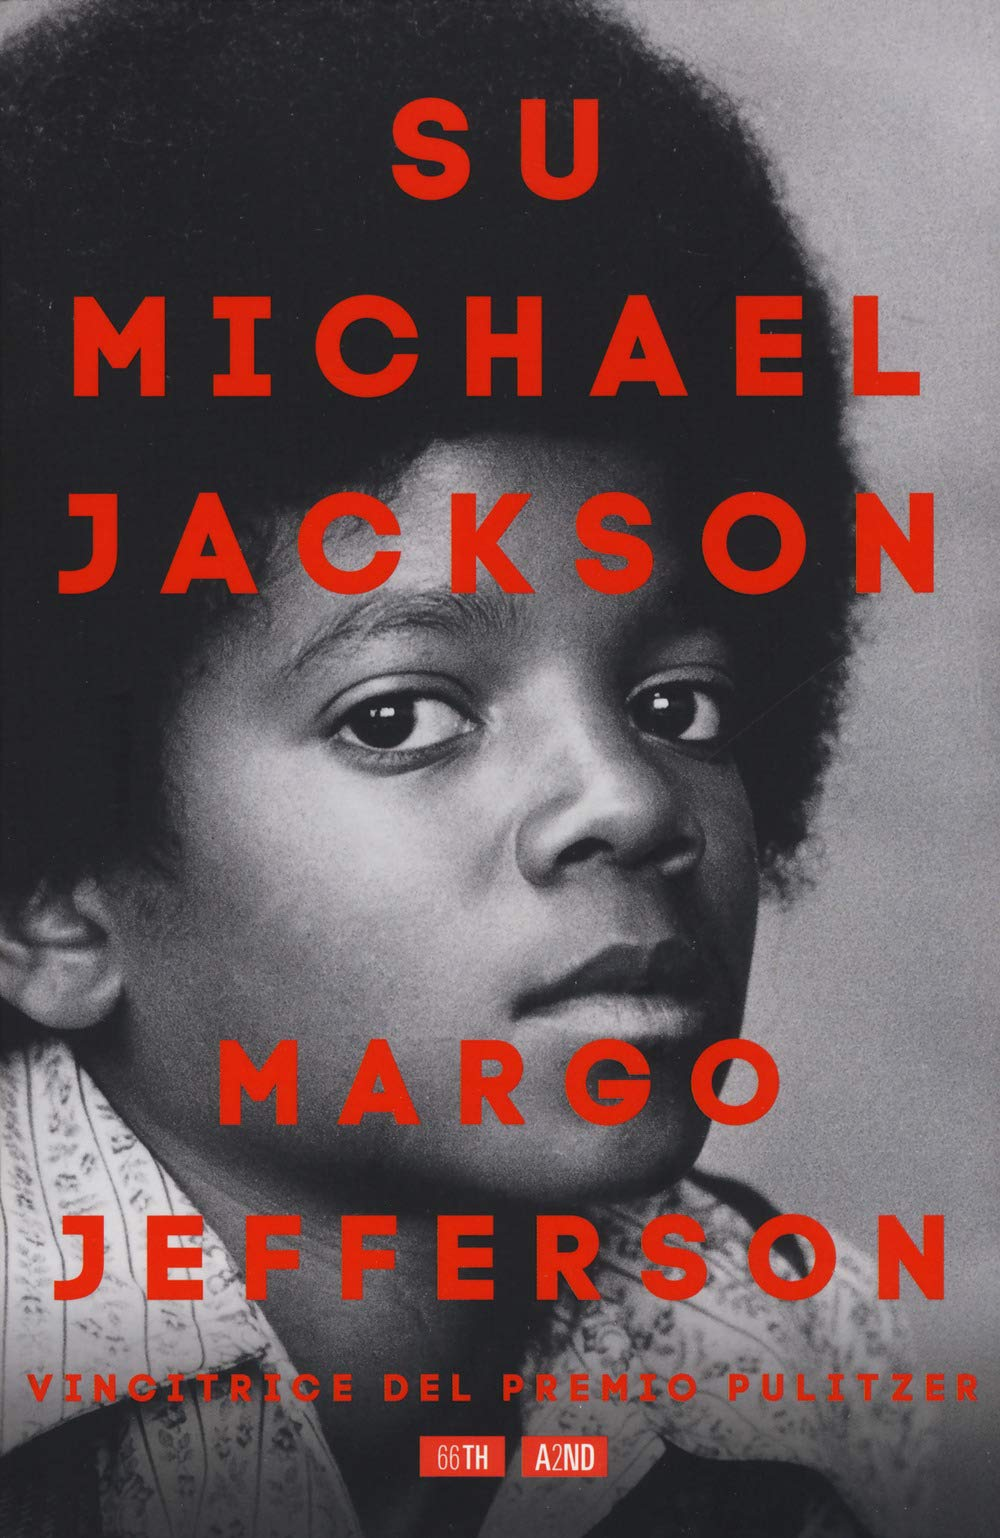 Recensione di Su Michael Jackson – Margo Jefferson